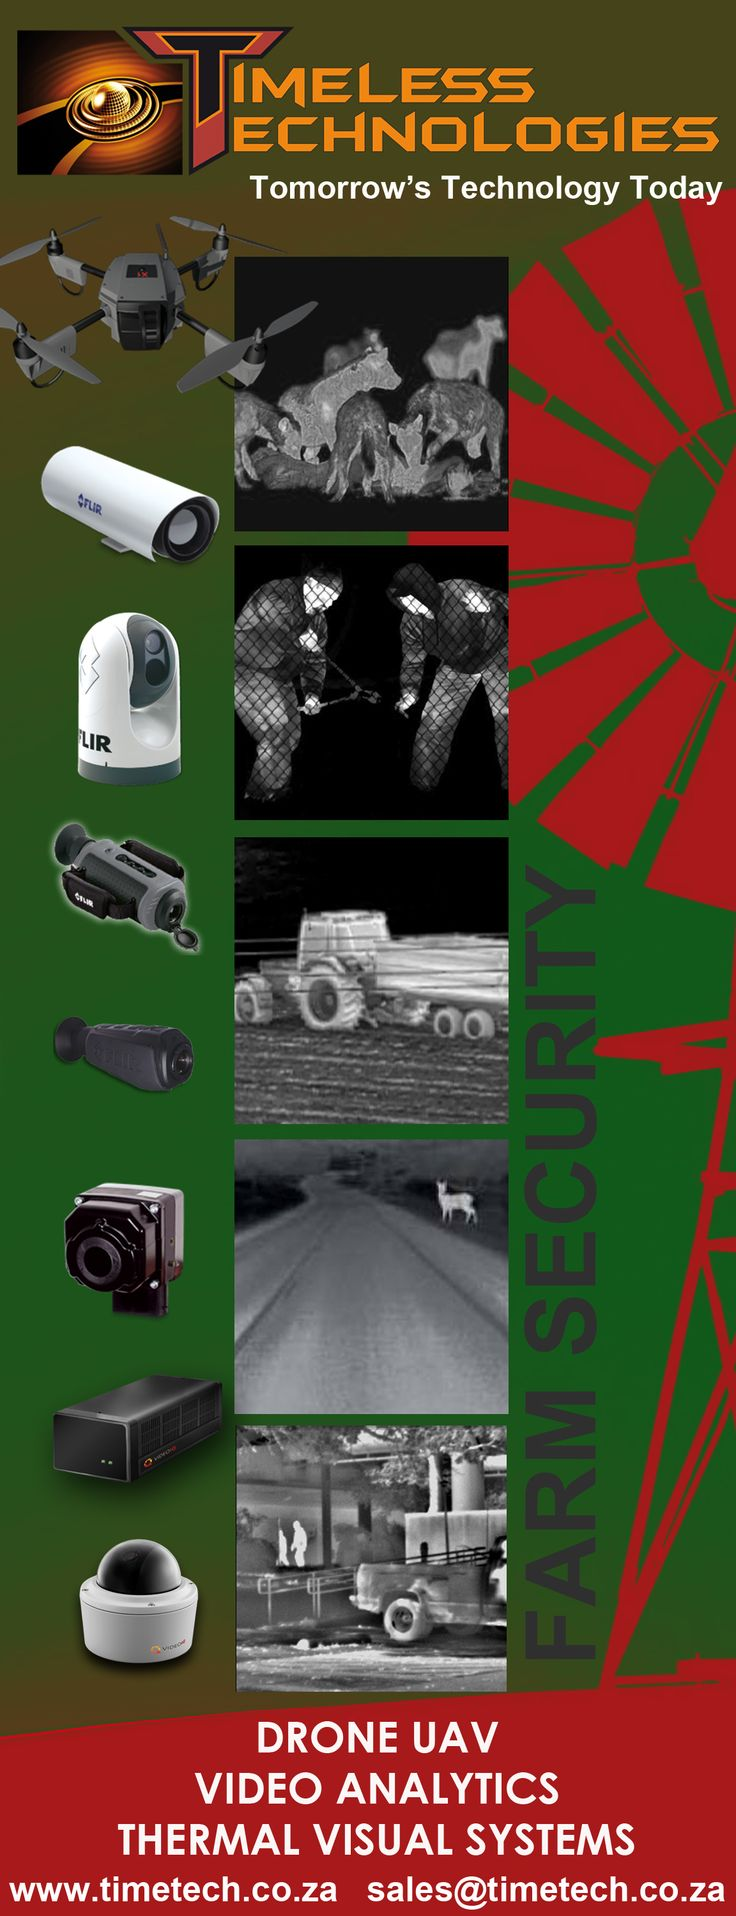 Various solutions for the Farming industry